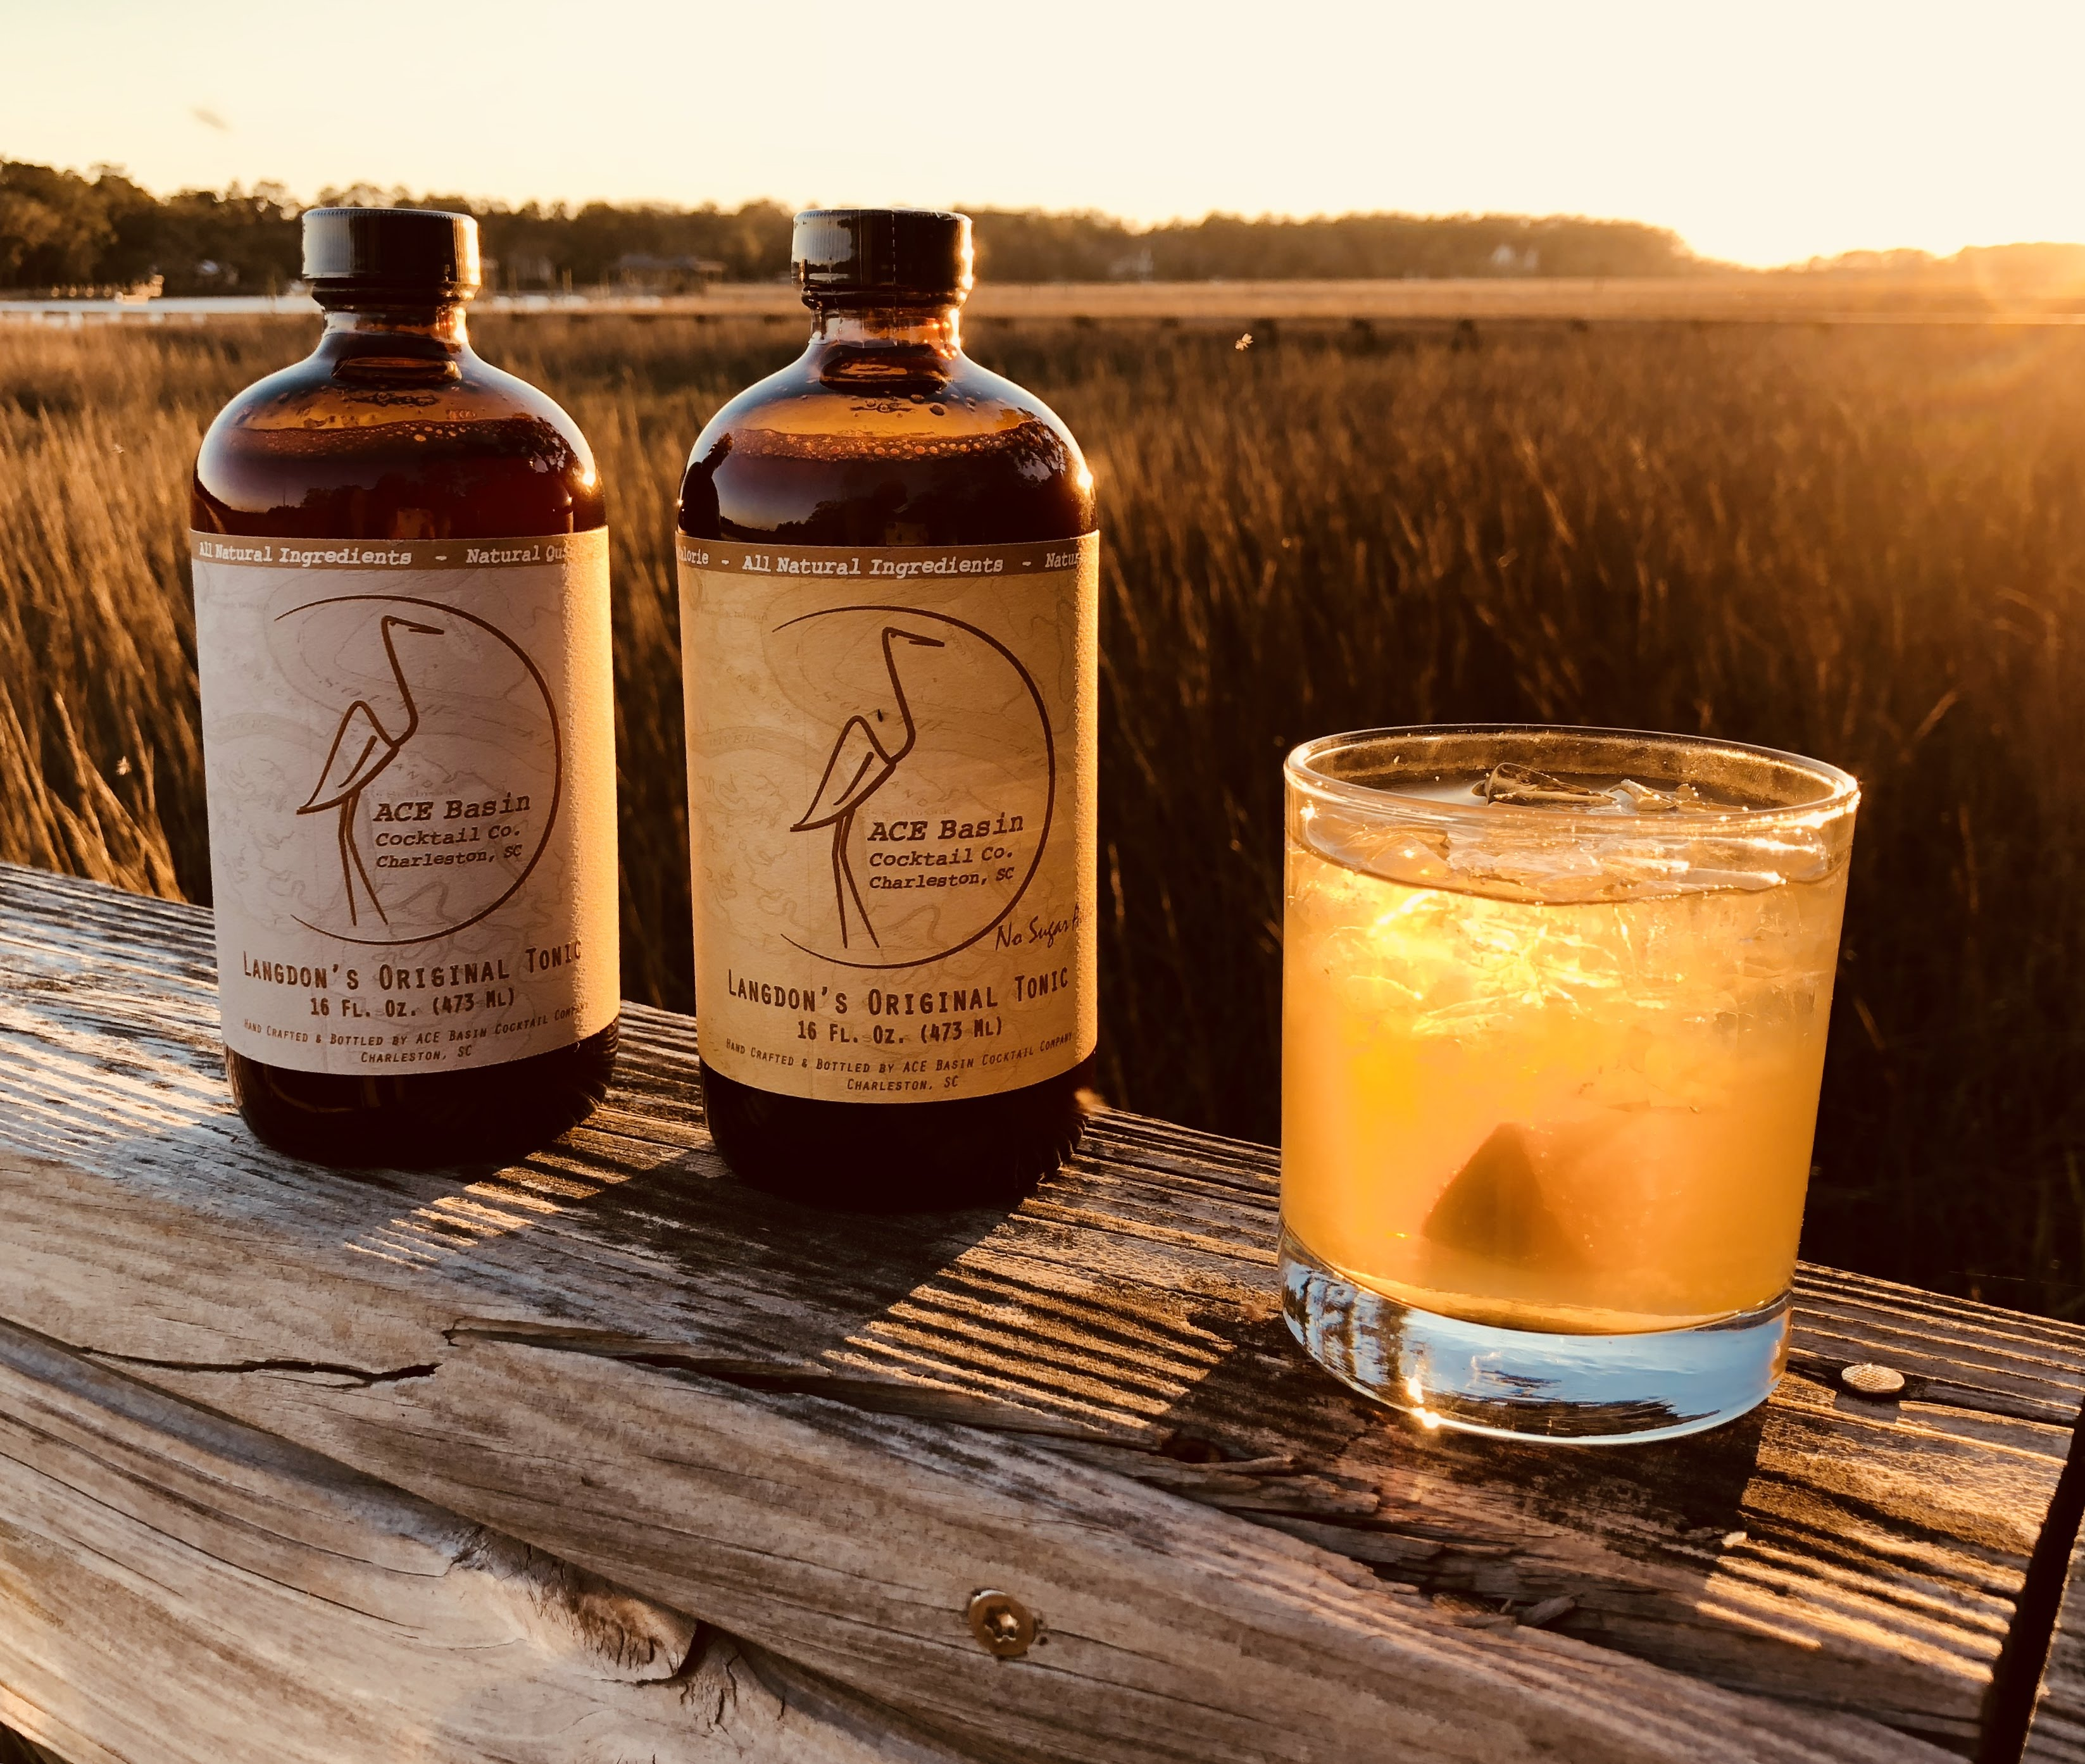 ACE Basin Cocktail Co. will add some fun to your Homegating party! - Featured Image